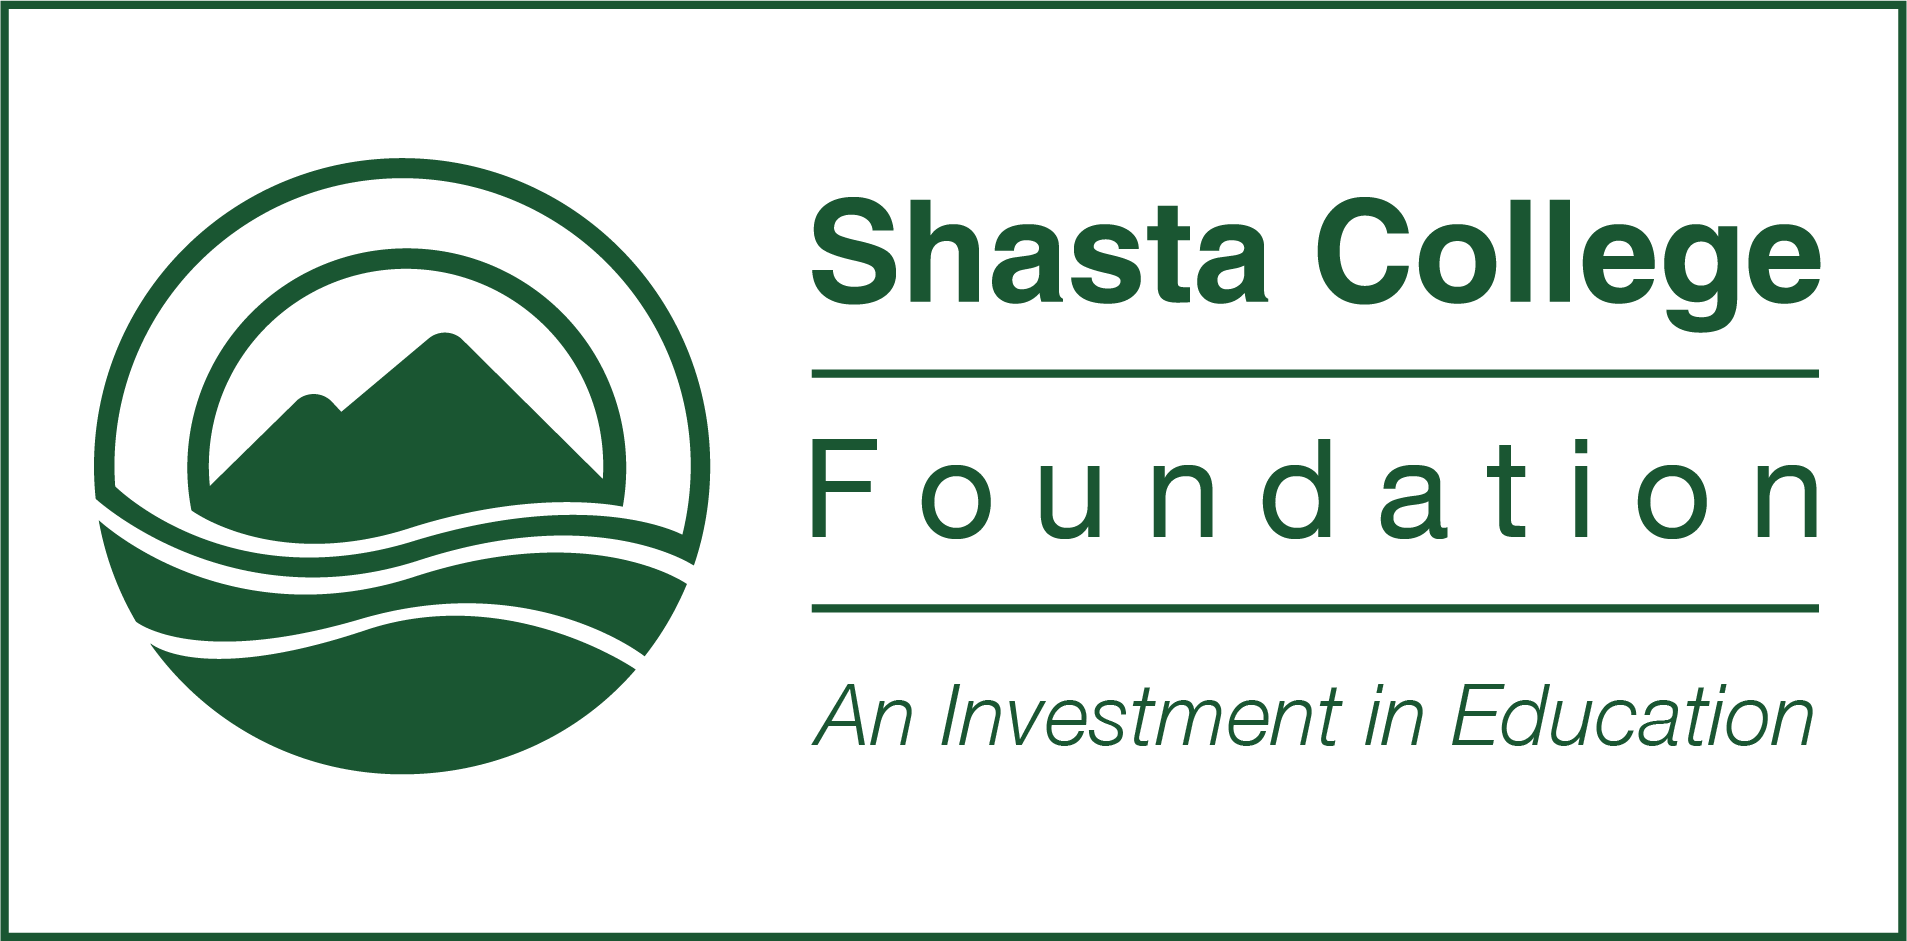 Foundation logo_green.png